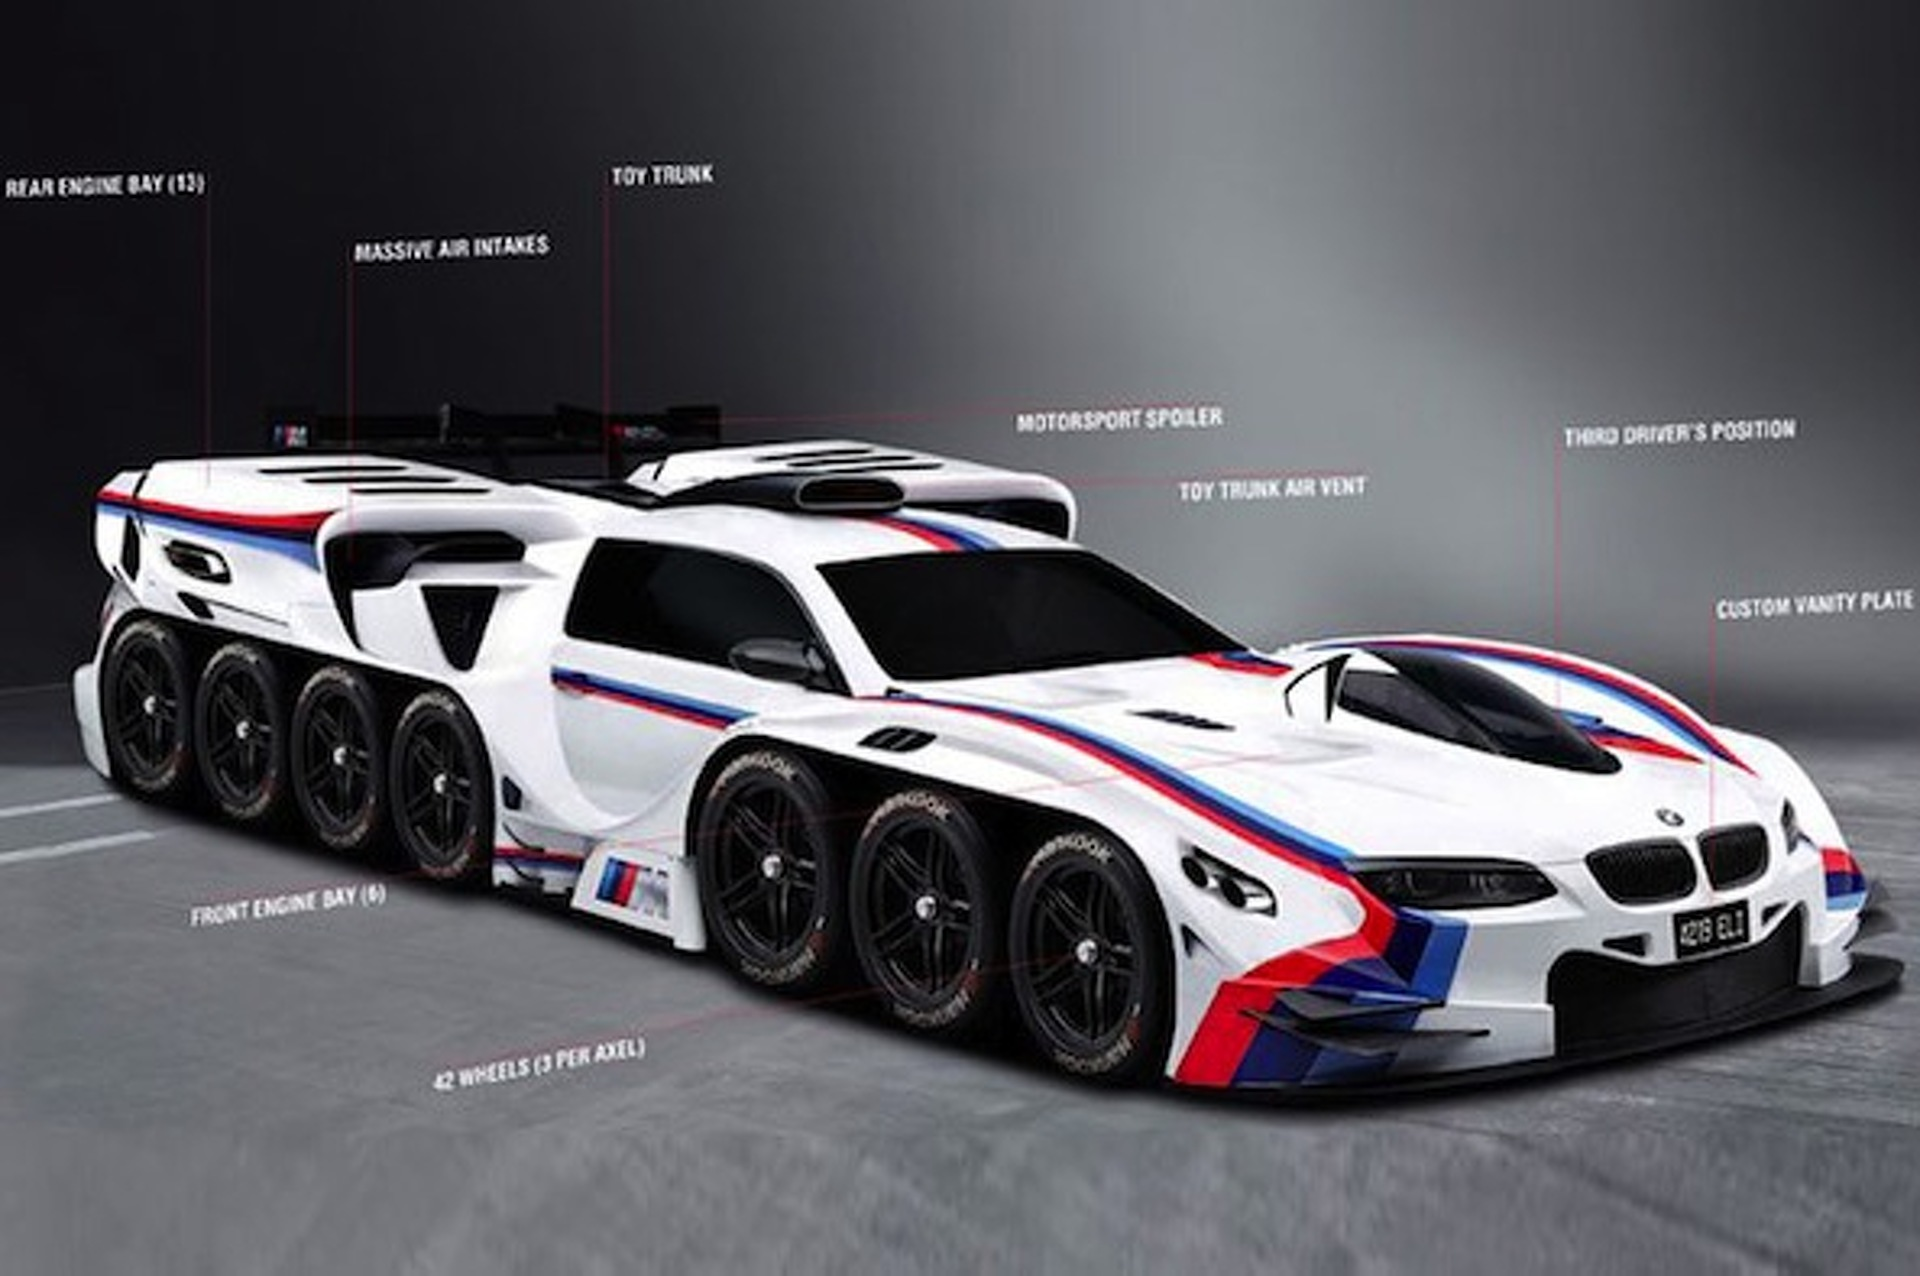 42-Wheeled BMW Concept is One Four-Year-Old's Dream